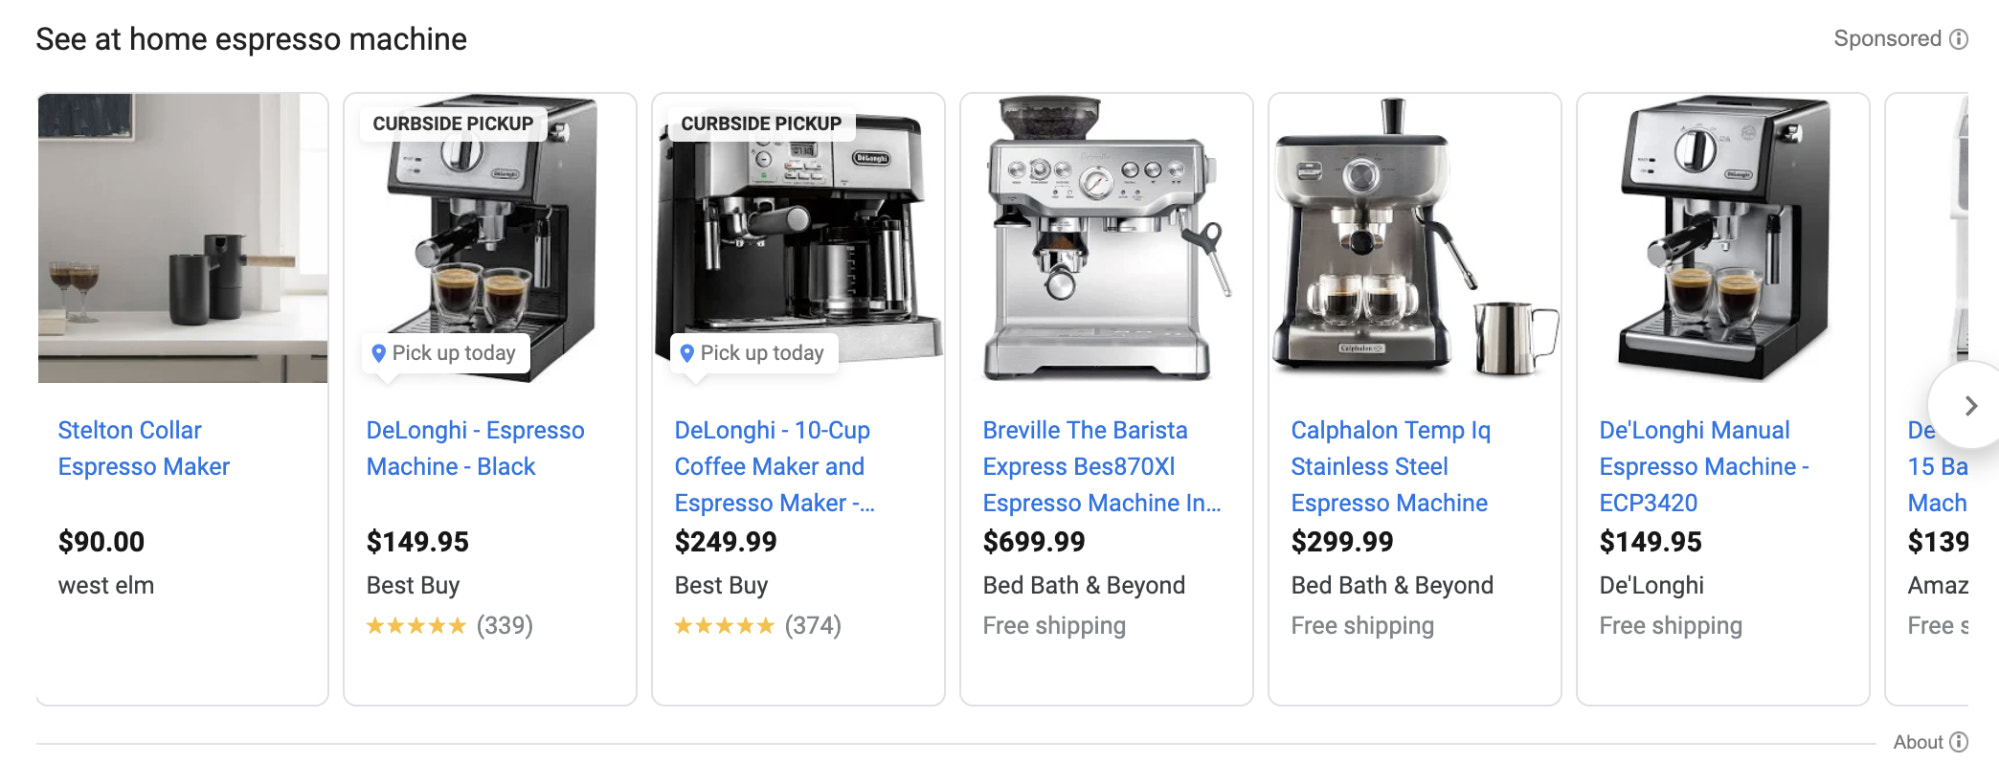 Example of how product titles appear in Shopping Ads in Google